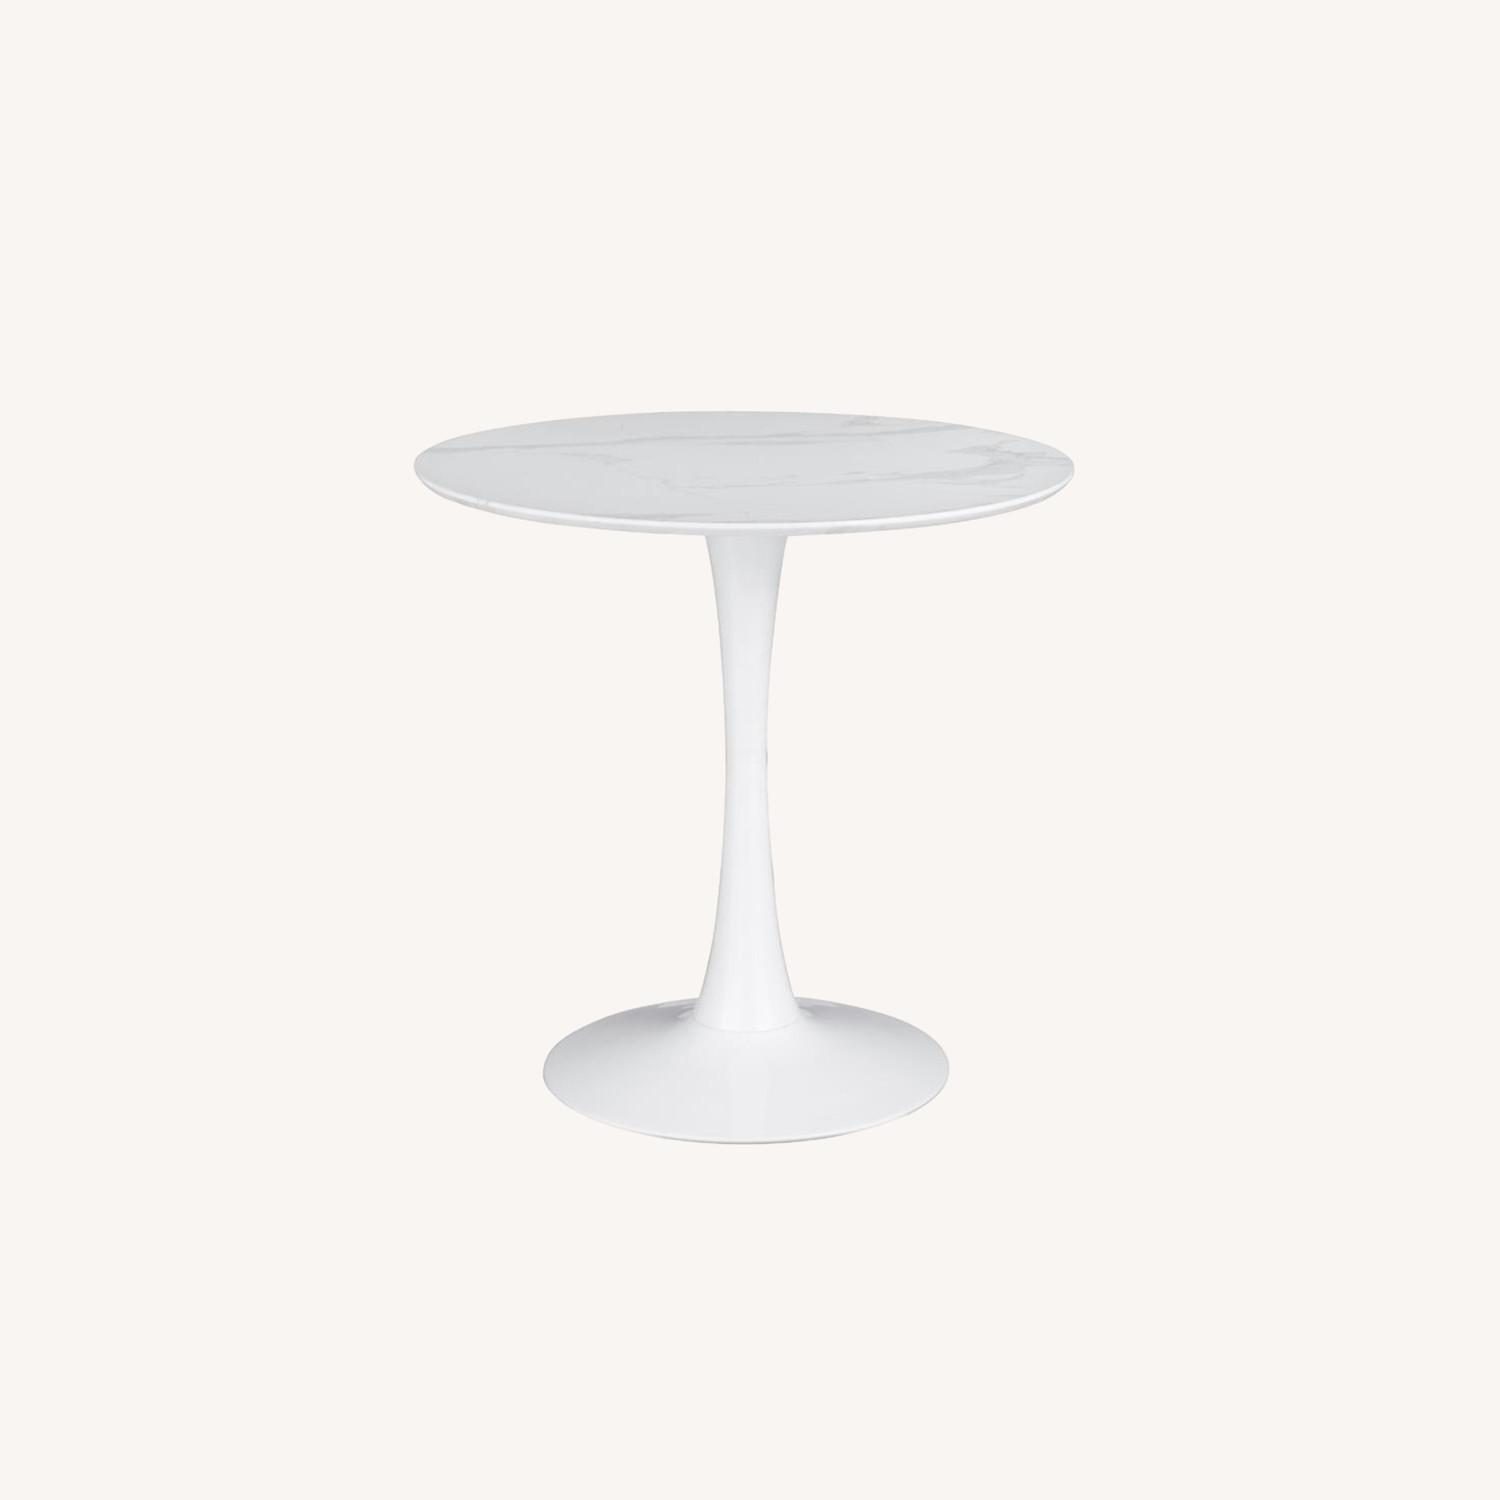 Round Dining Table In White Faux Marble Top - image-4